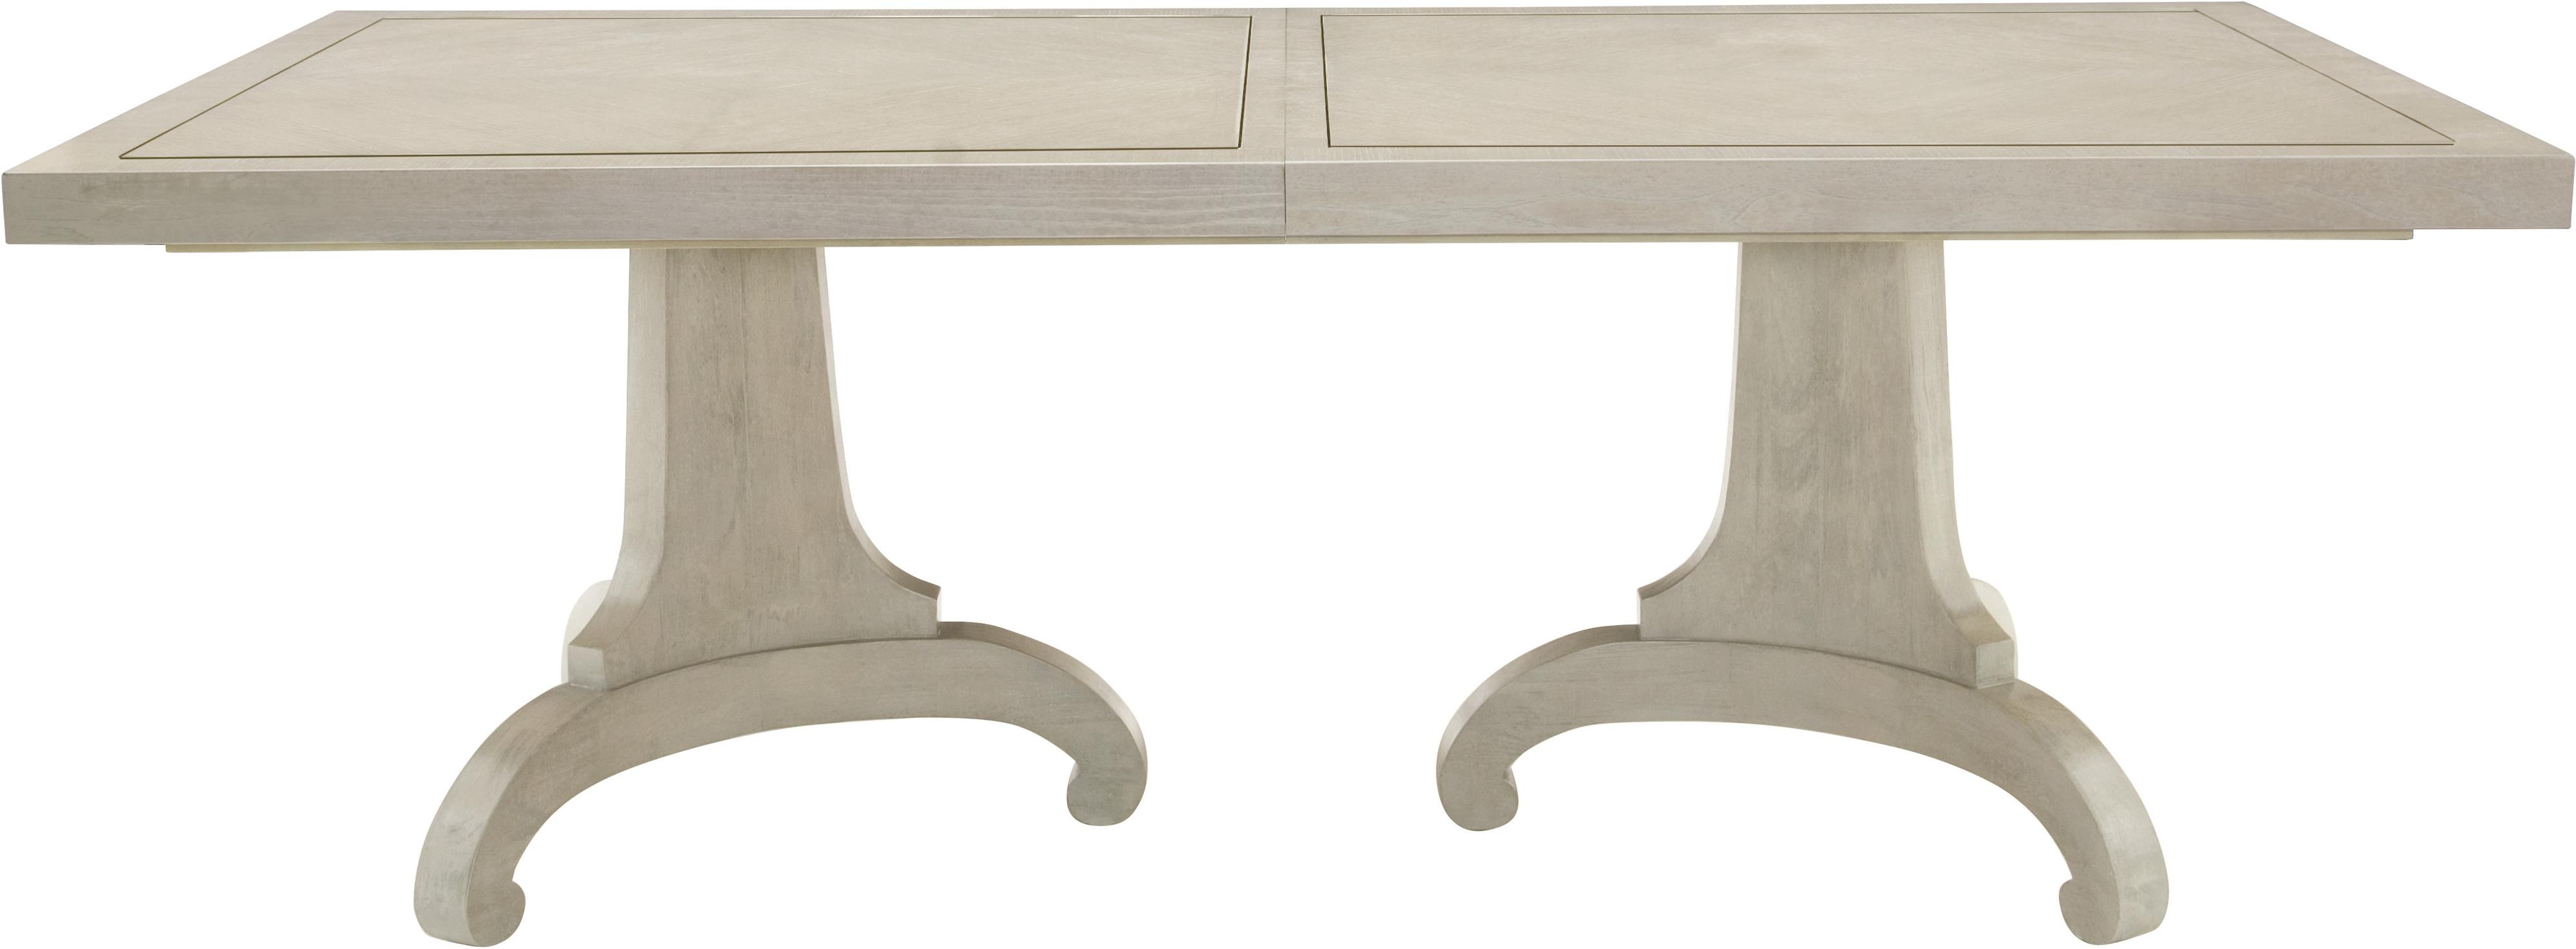 Bernhardt Criteria Dining Table - Item Number: 363-244G+2G